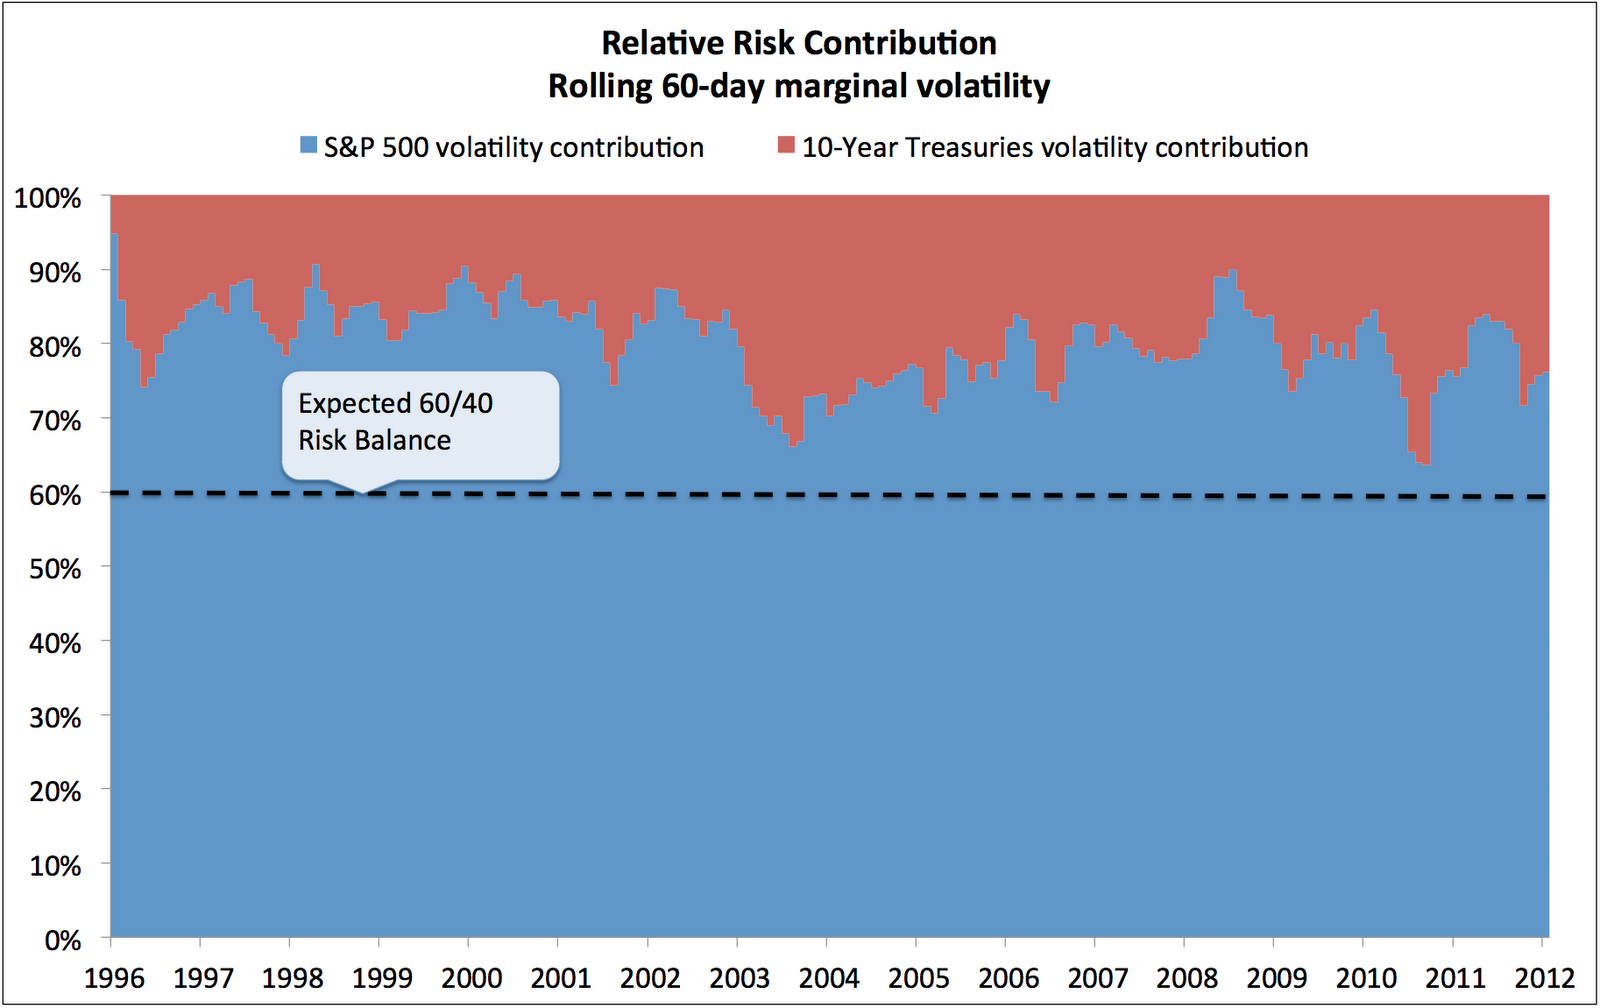 Contribution salariale stock options 2012